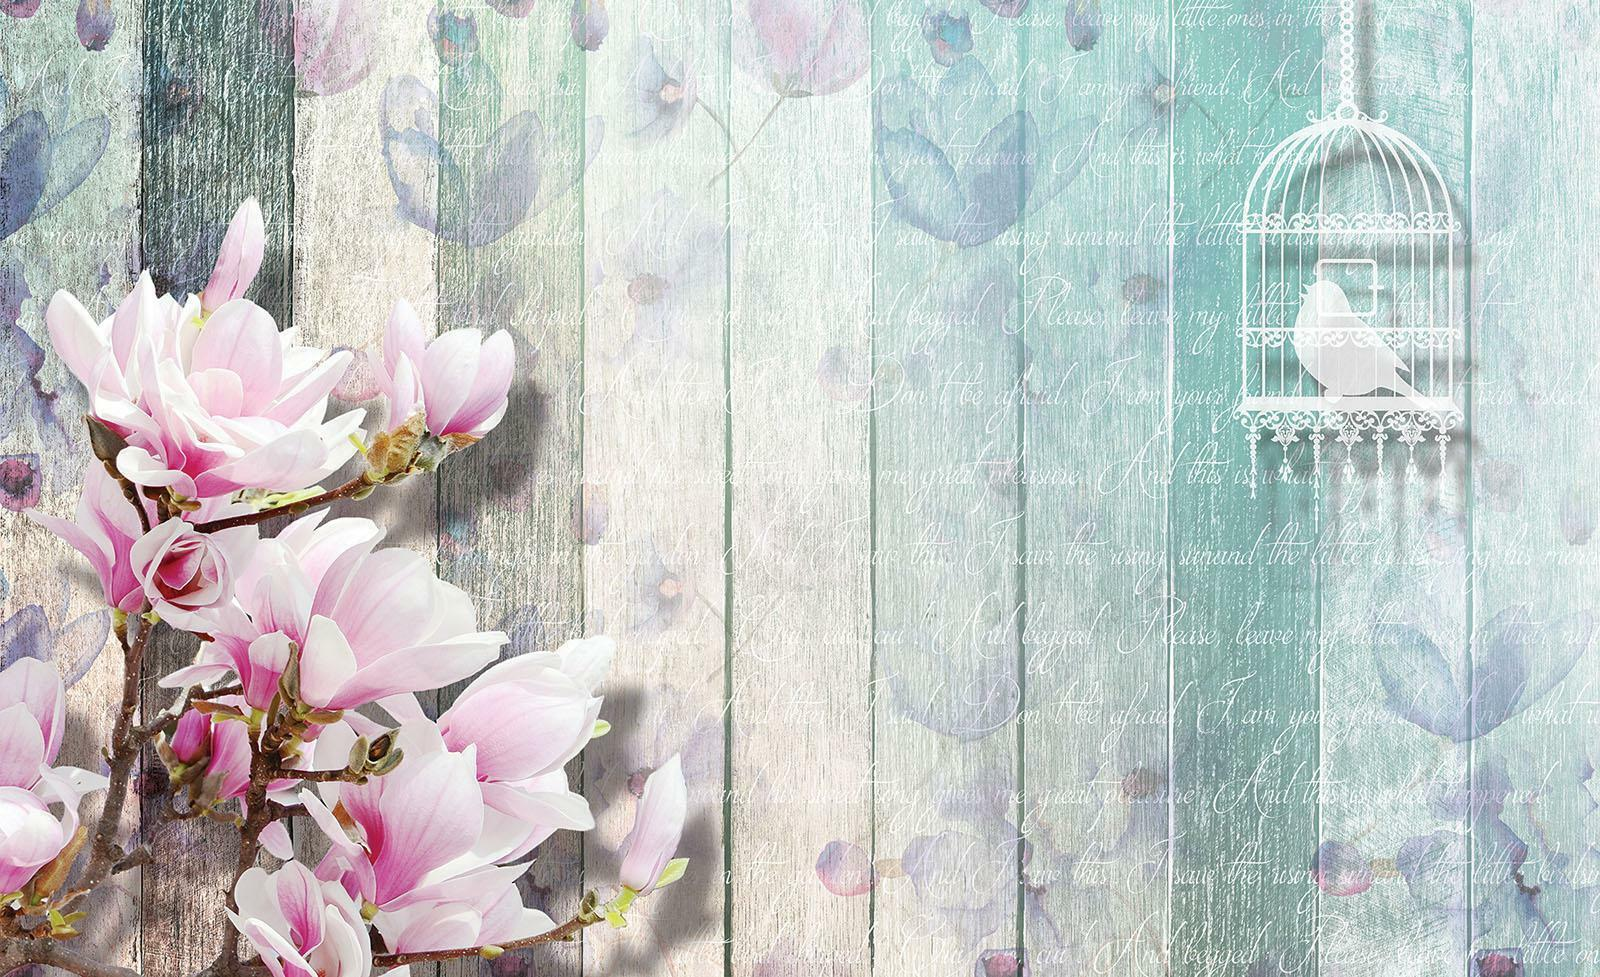 Photo Wallpaper Mural  20173_P Floral Pattern and Colourful Planks Abstract Imit